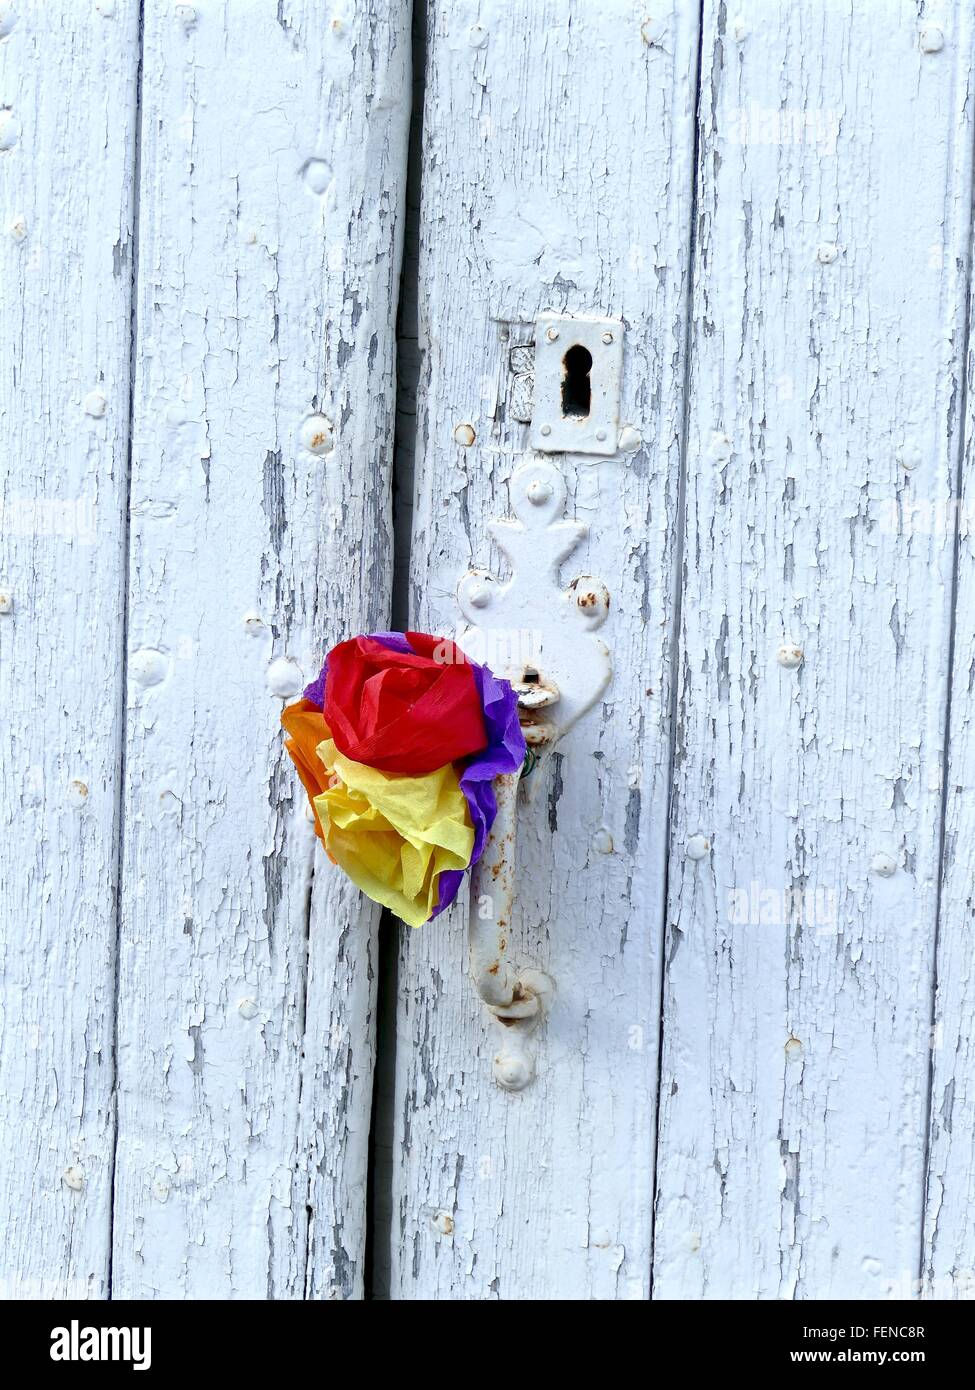 Multi Colored Artificial Flowers On Handle Of White Door - Stock Image